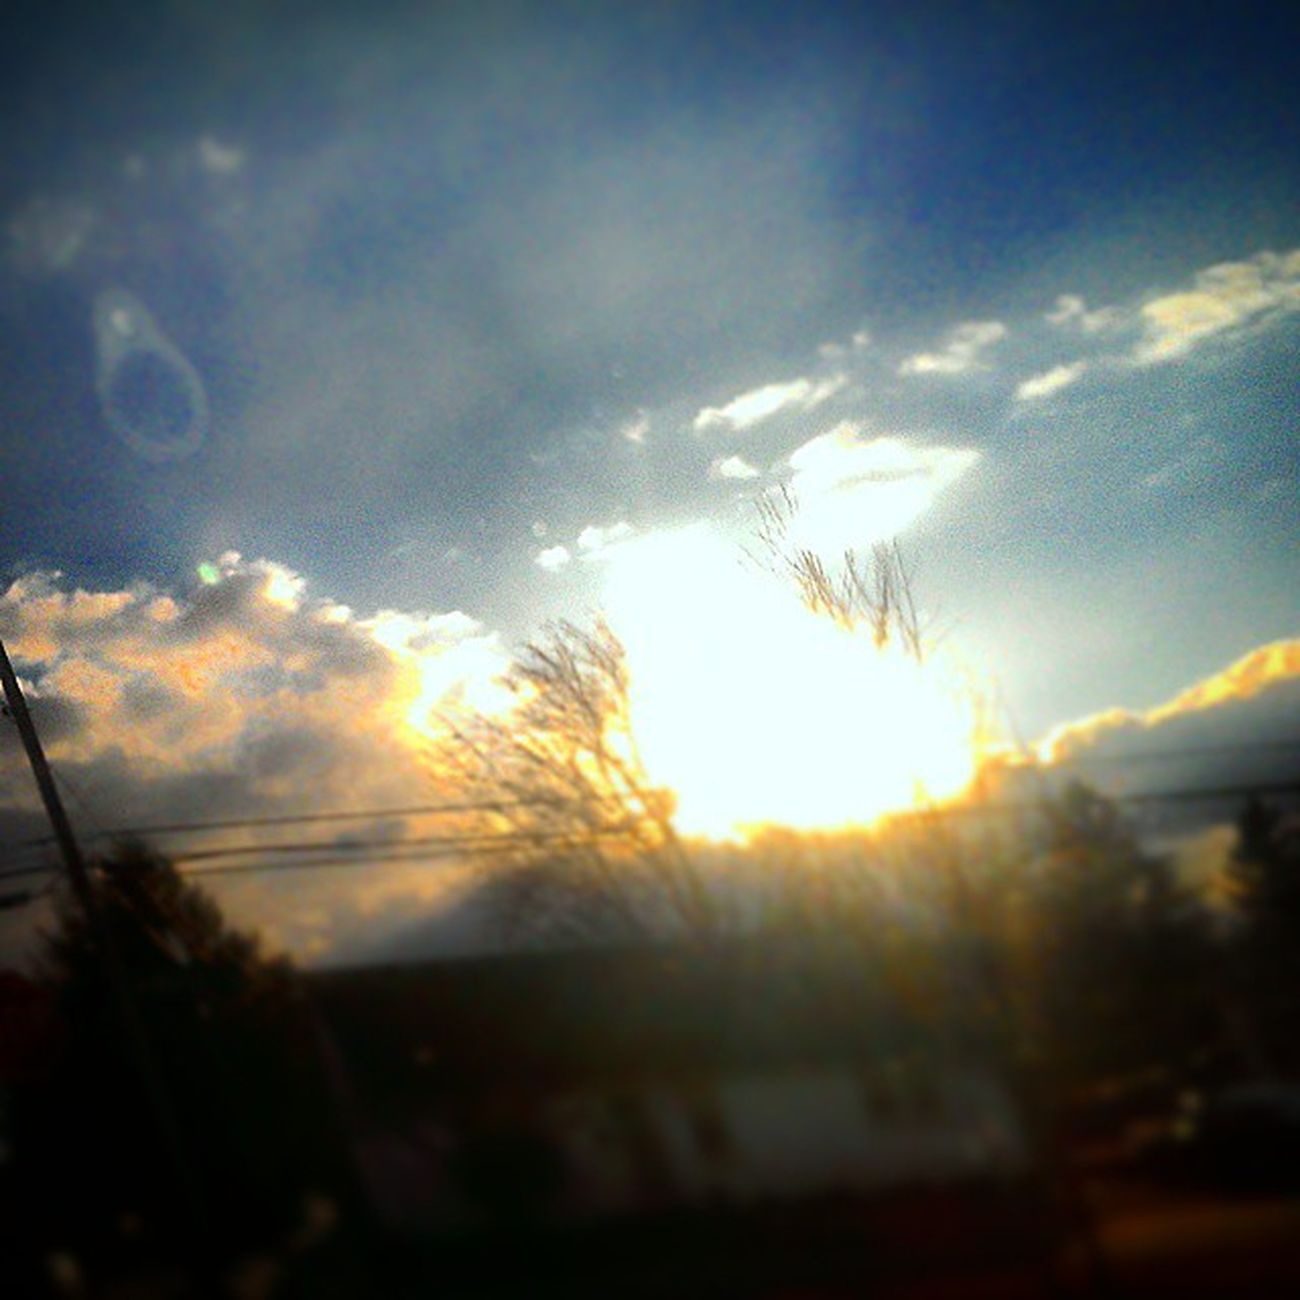 Igerspennsylvania Ig_pennsylvania Earthporr Earth sunset clouds paradise dubc eastcoast pennsylvania perception